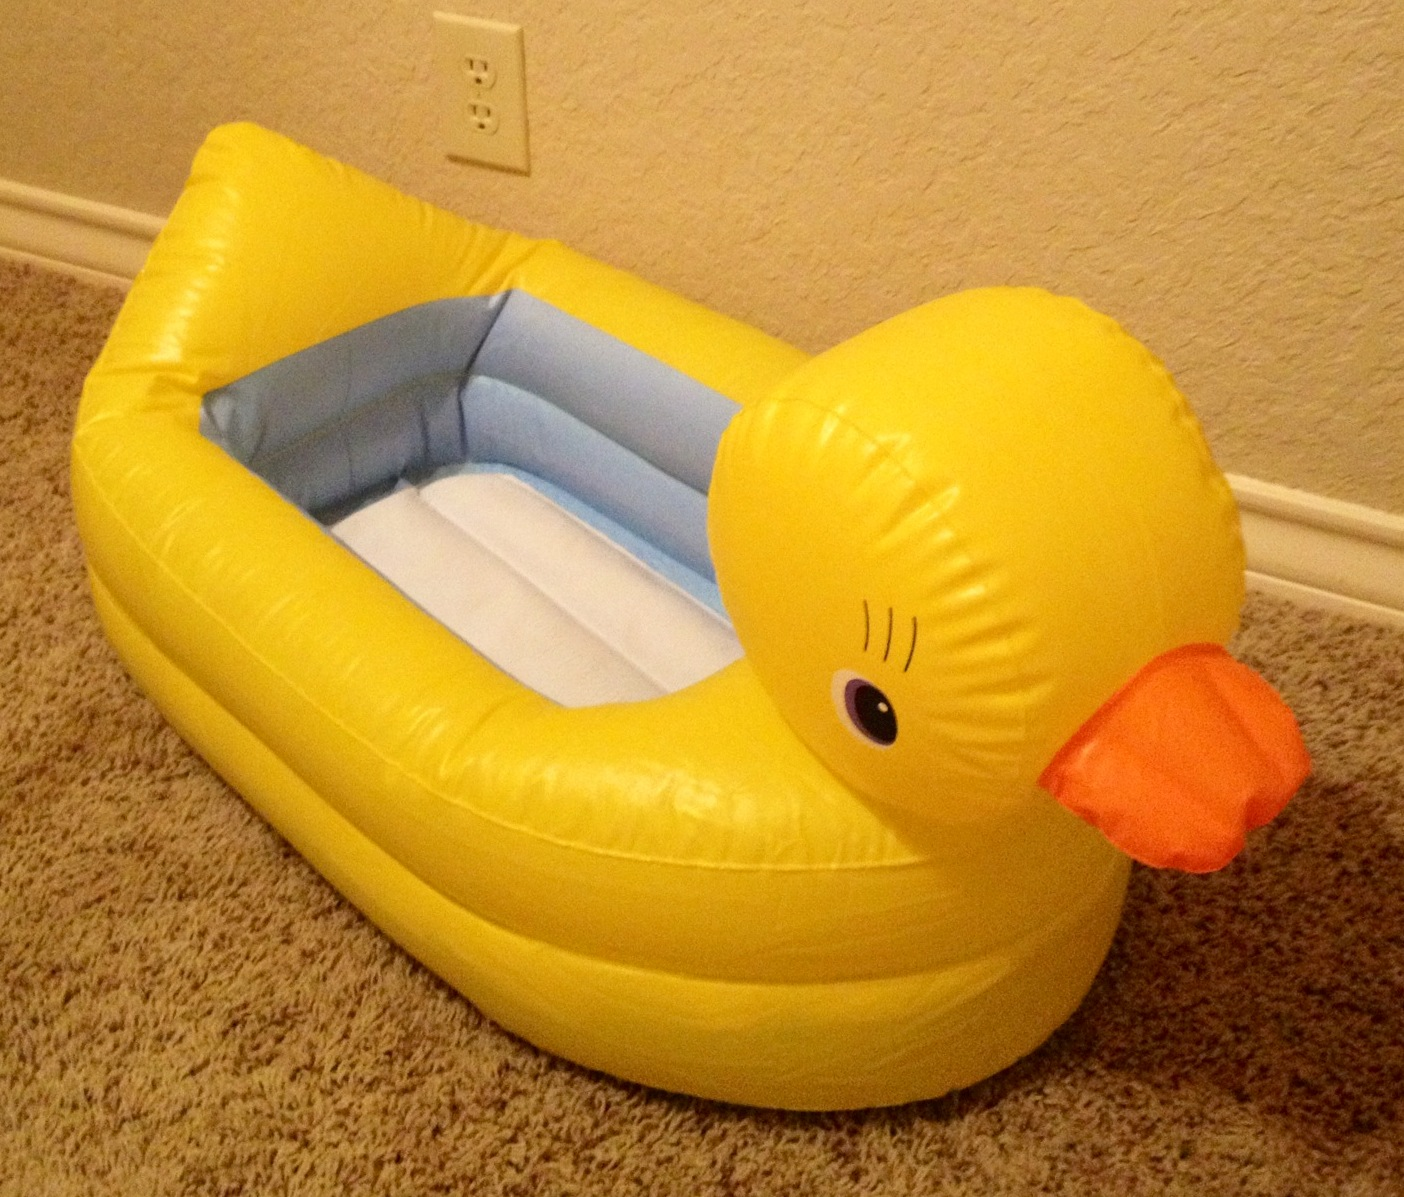 Baby Bargains: Munchkin White Hot Inflatable Safety Duck